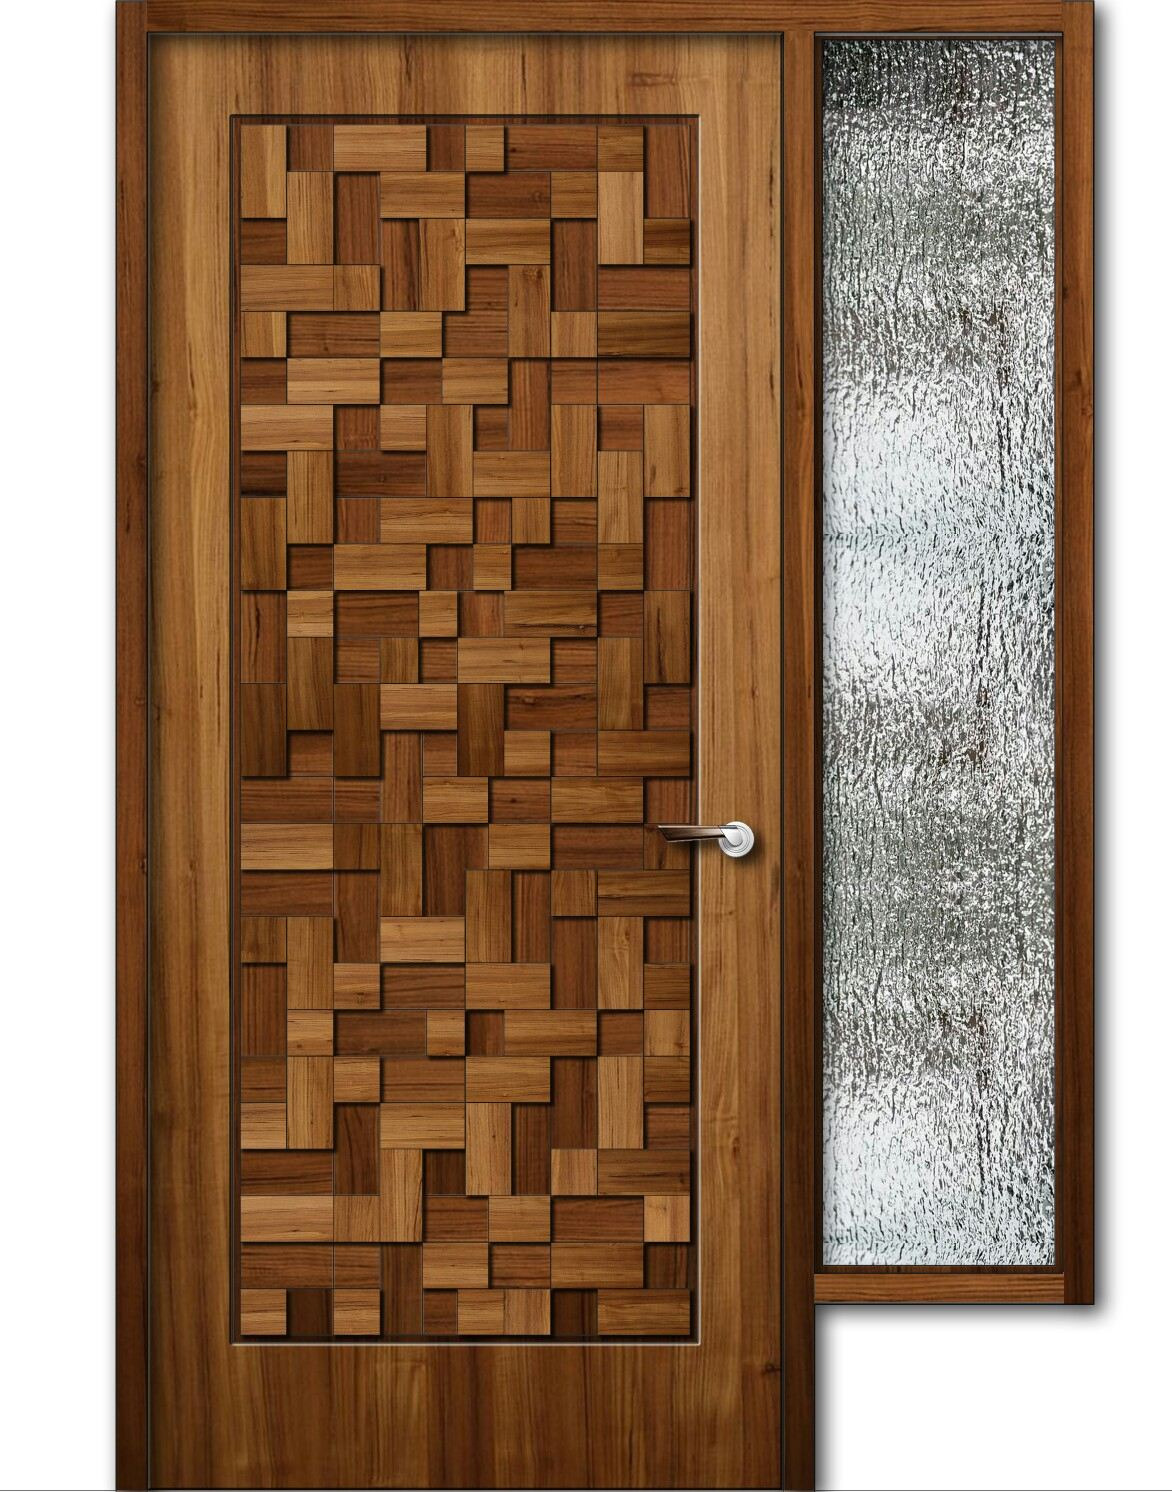 wood simple designs doors door designs simple teak wood single main pakistani door style pakistani door pic